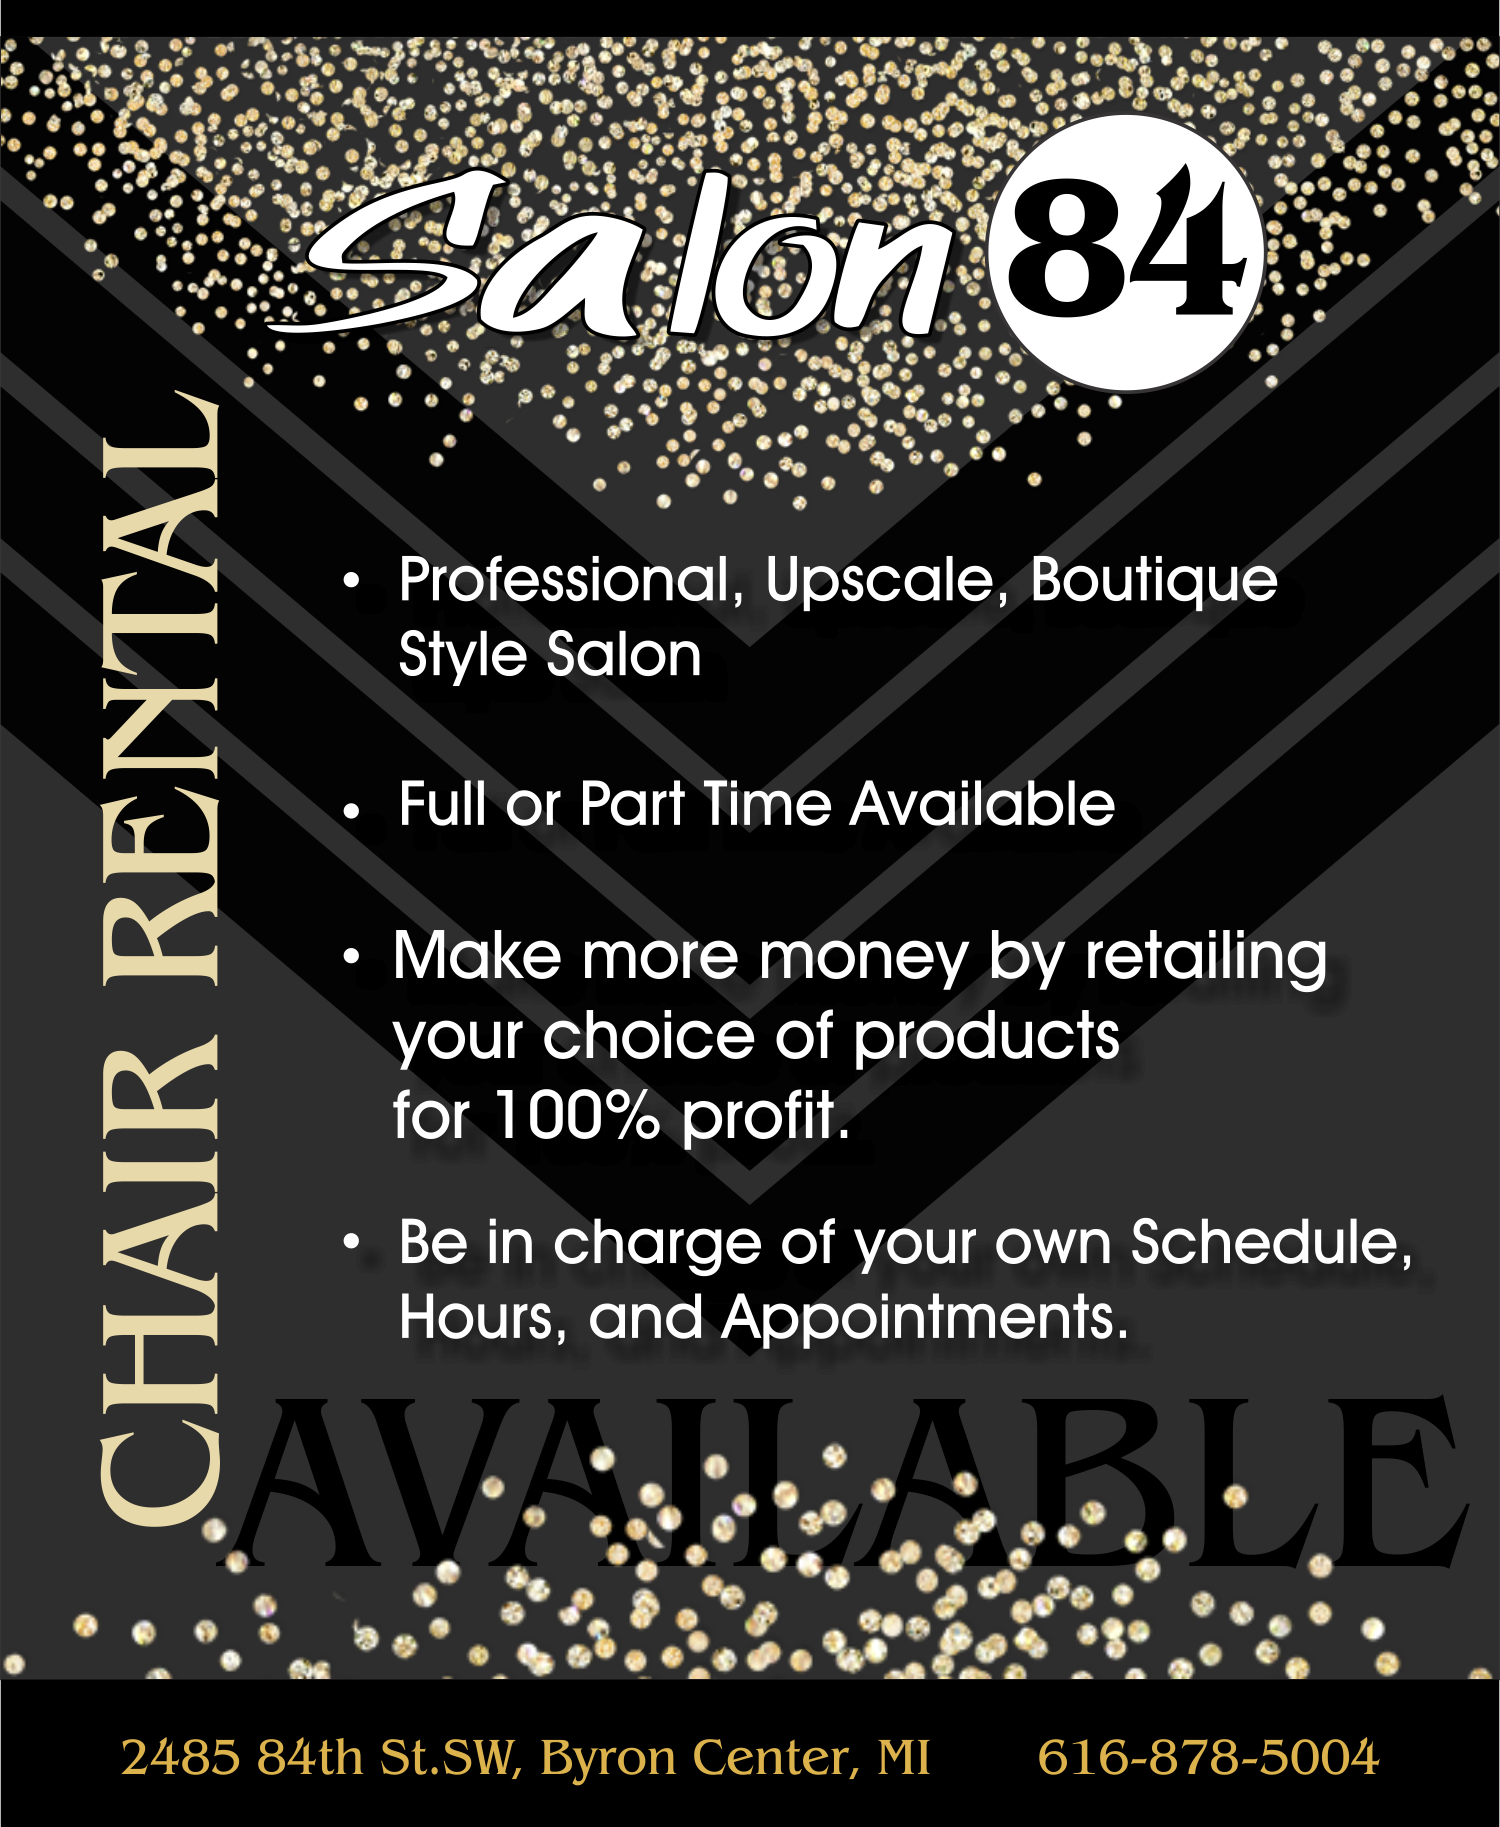 salon84.png